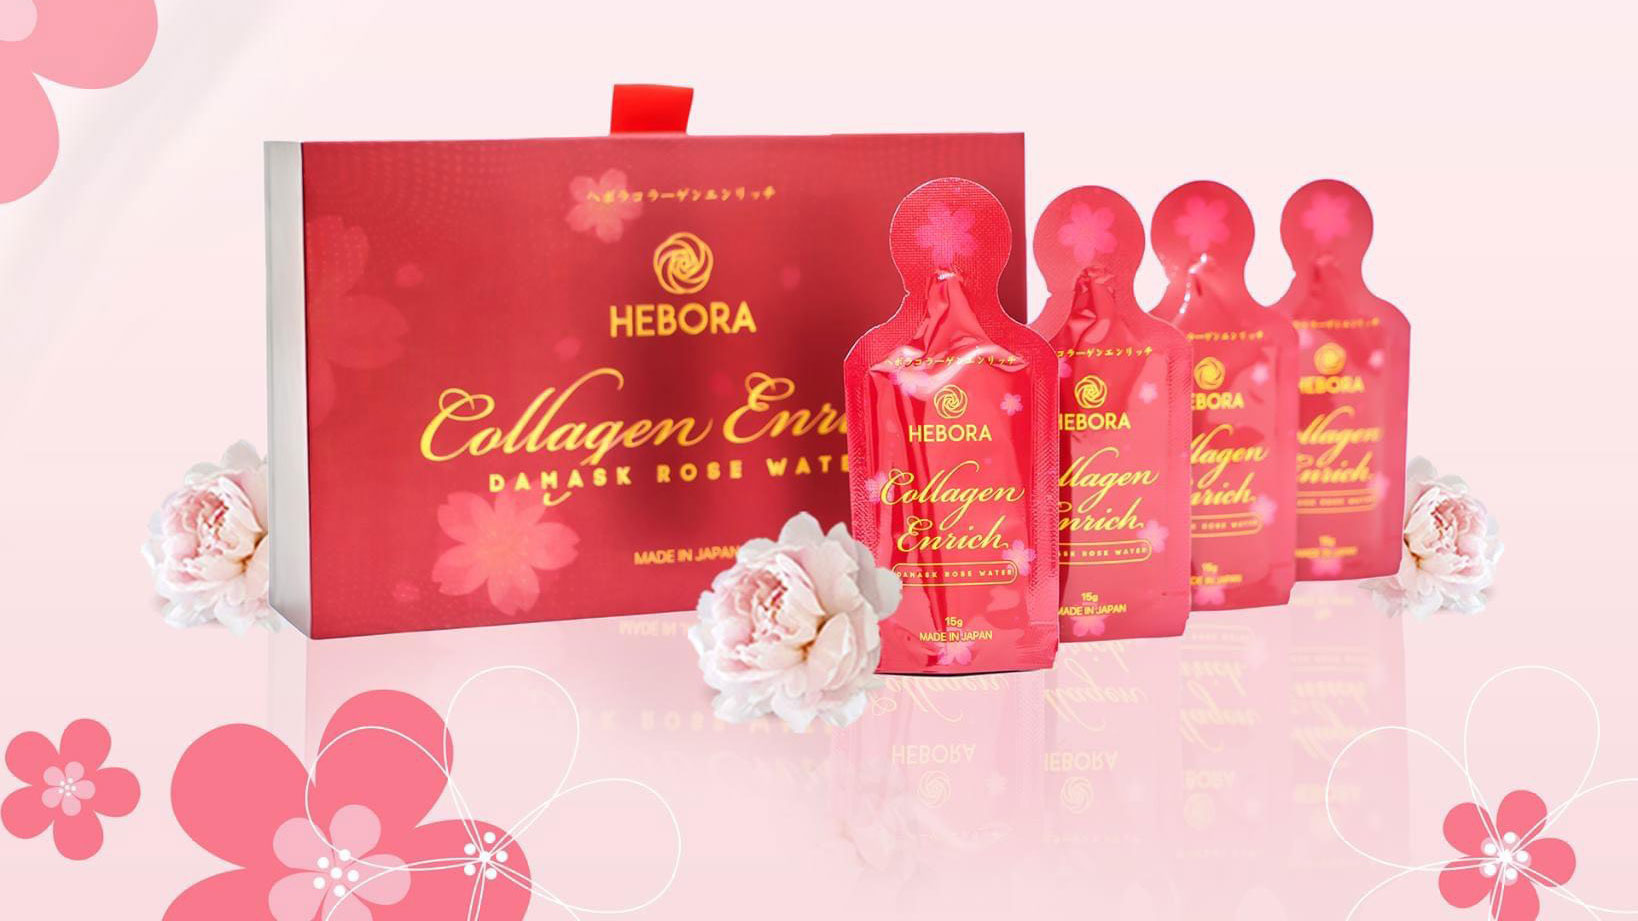 Hebora-Collagen-Enrich-Tui